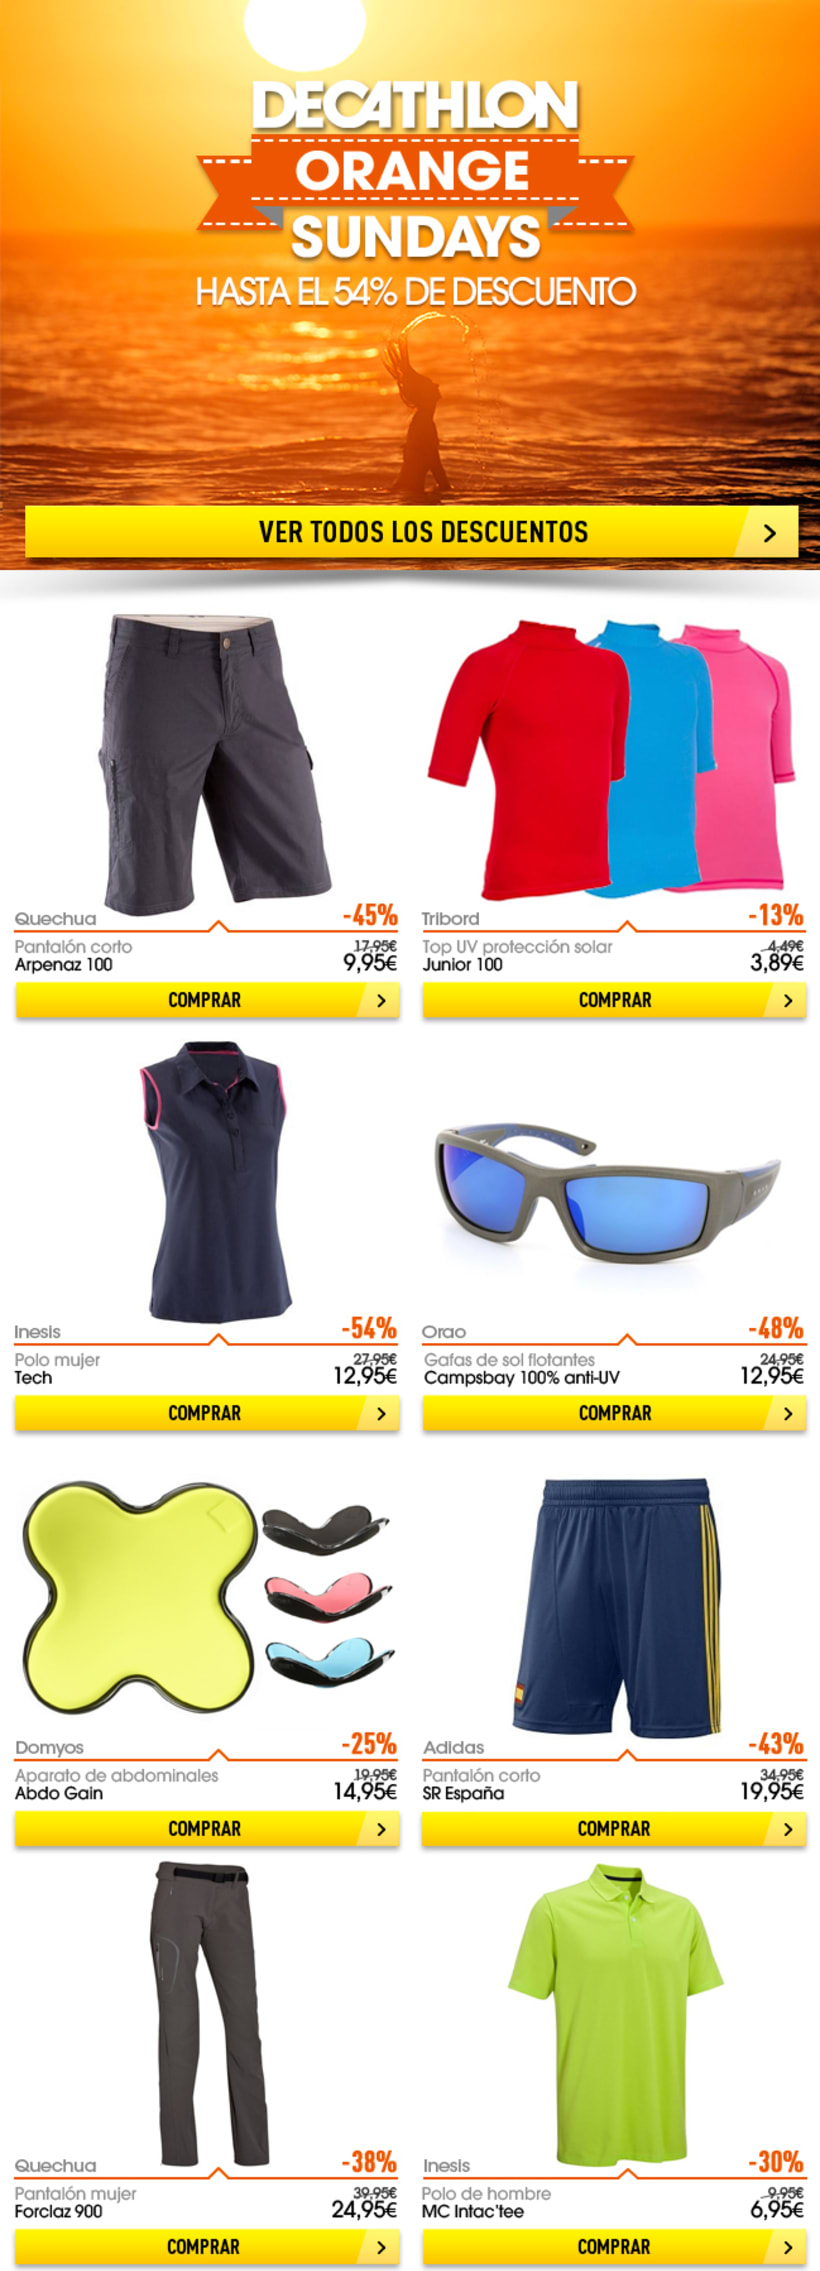 Mailing Decathlon S.A. 2